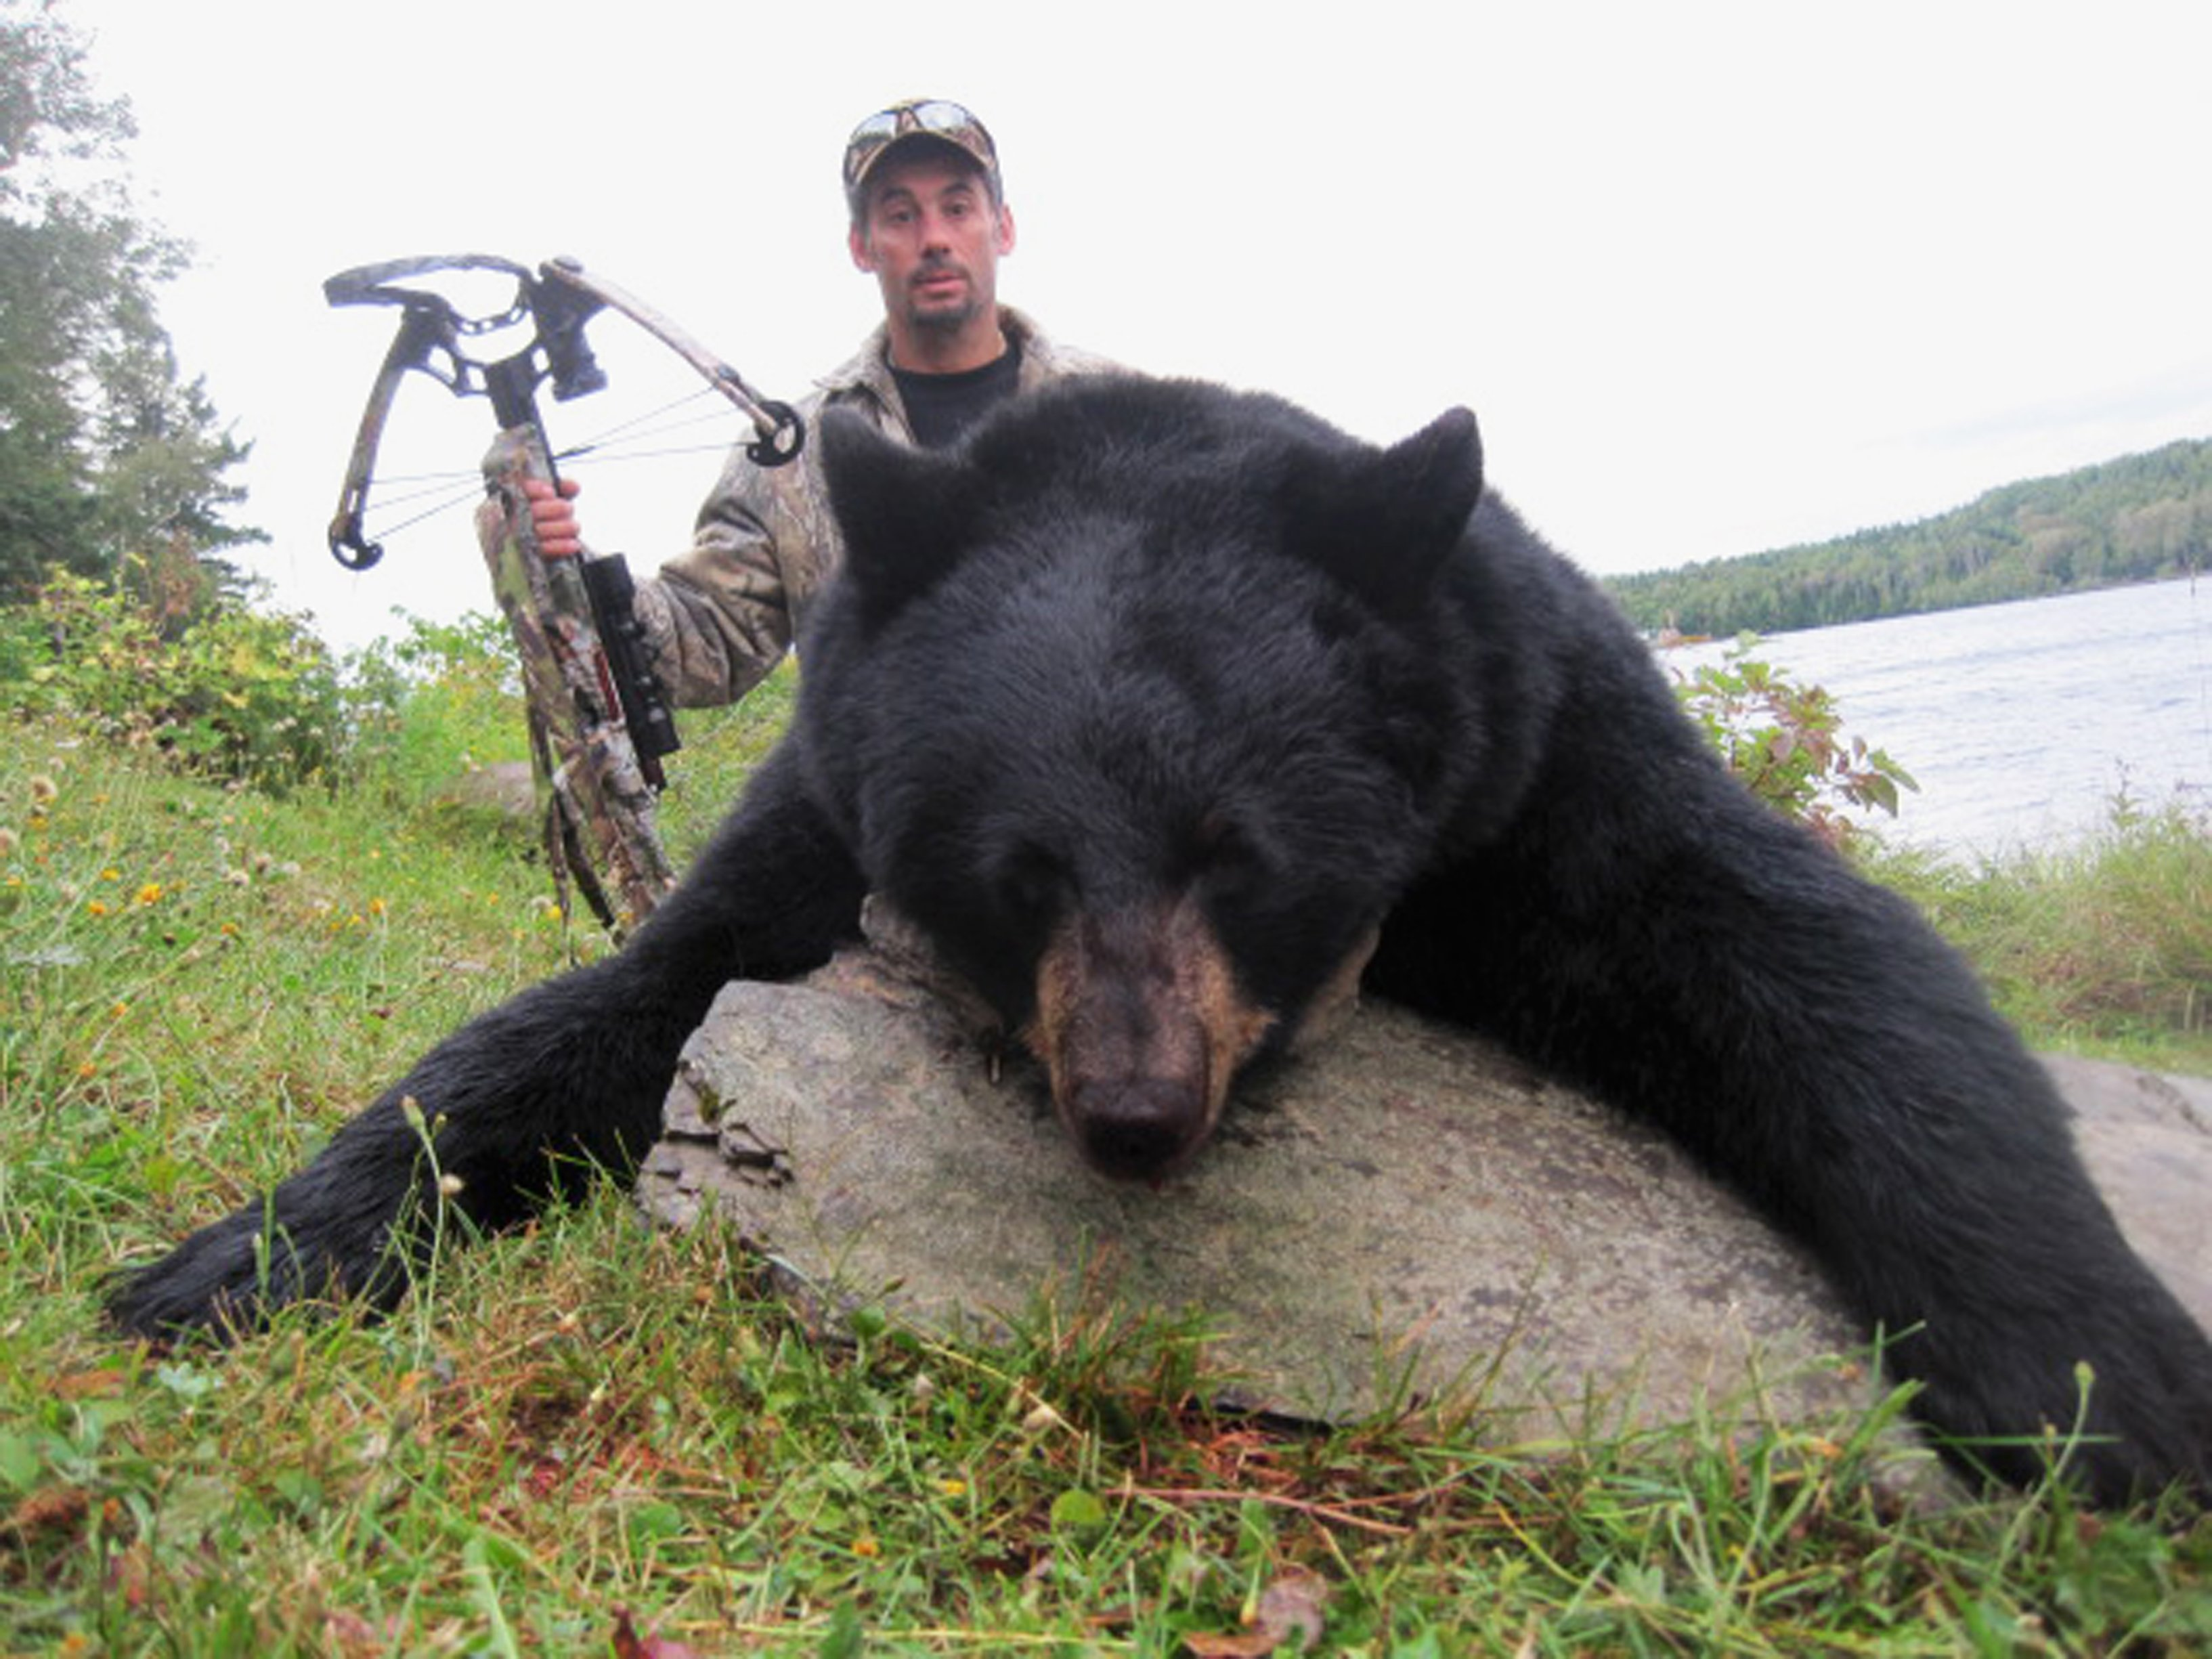 State record crossbow sow, 325 lbs. by Al Anza (MA).